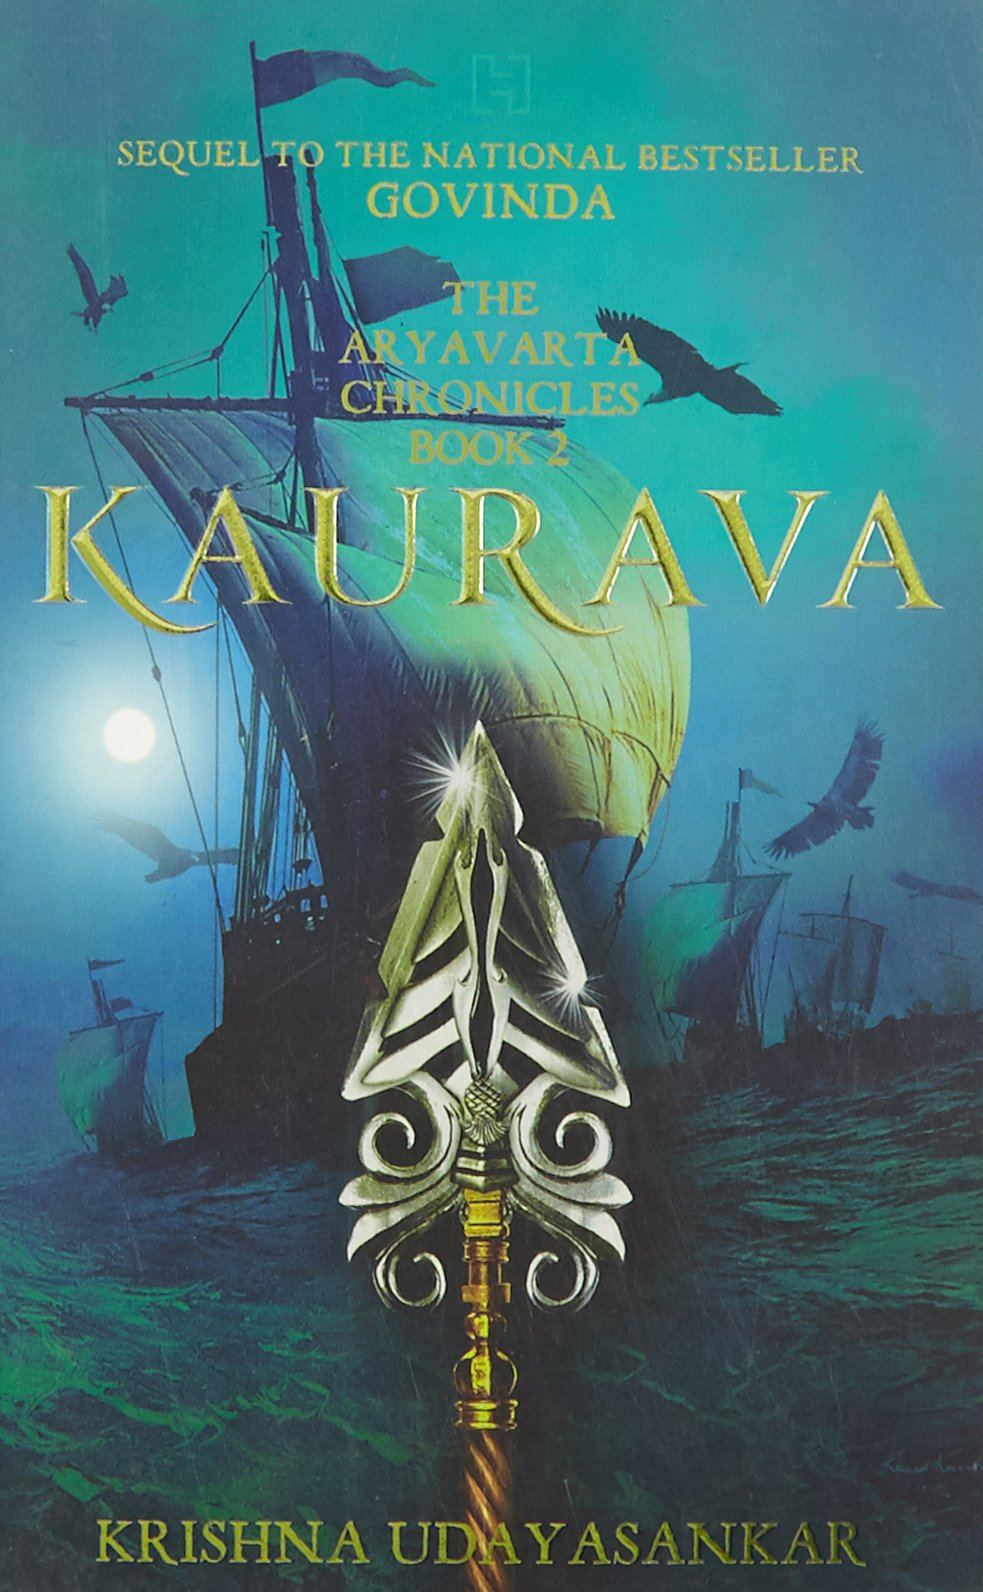 THE ARYAVARTA CHRONICLES - BOOK 2 : KAURAVA : Nothing left to fight for is nothing left to lose...